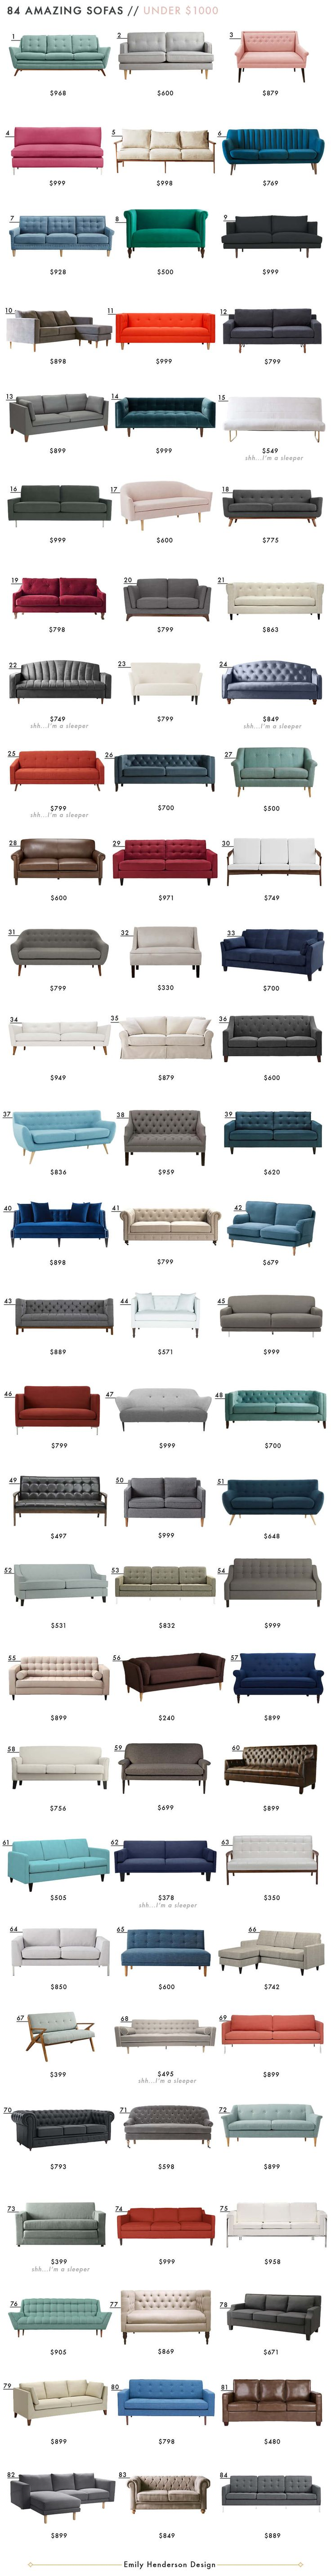 I'll be using this as a quick visual style guide for diy upholstering (84 Affordable Couches Under $1000)